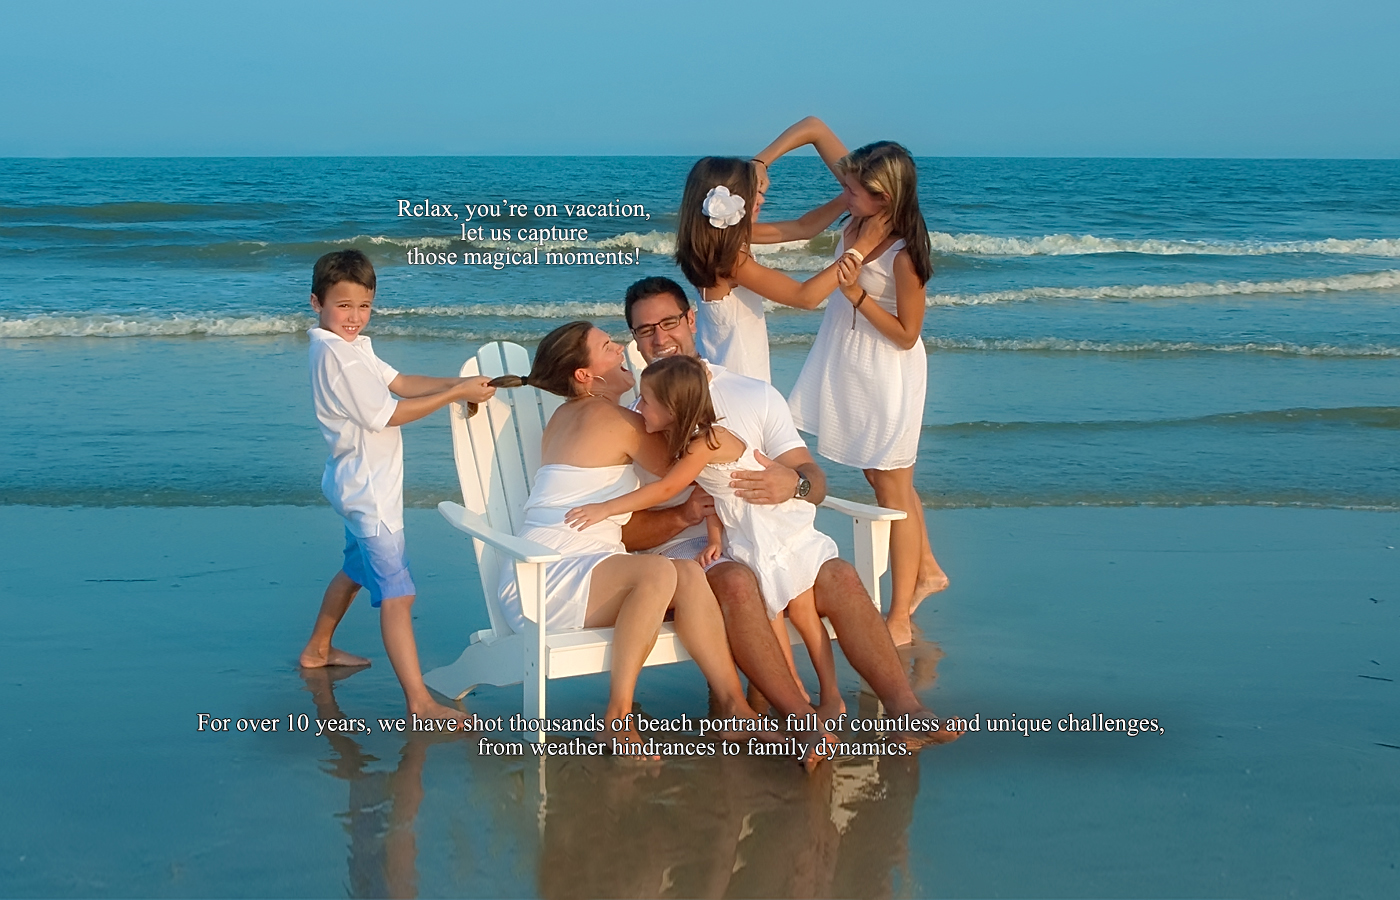 Hilton Head Island Photography May Be Reached By Calling 843 683 6883